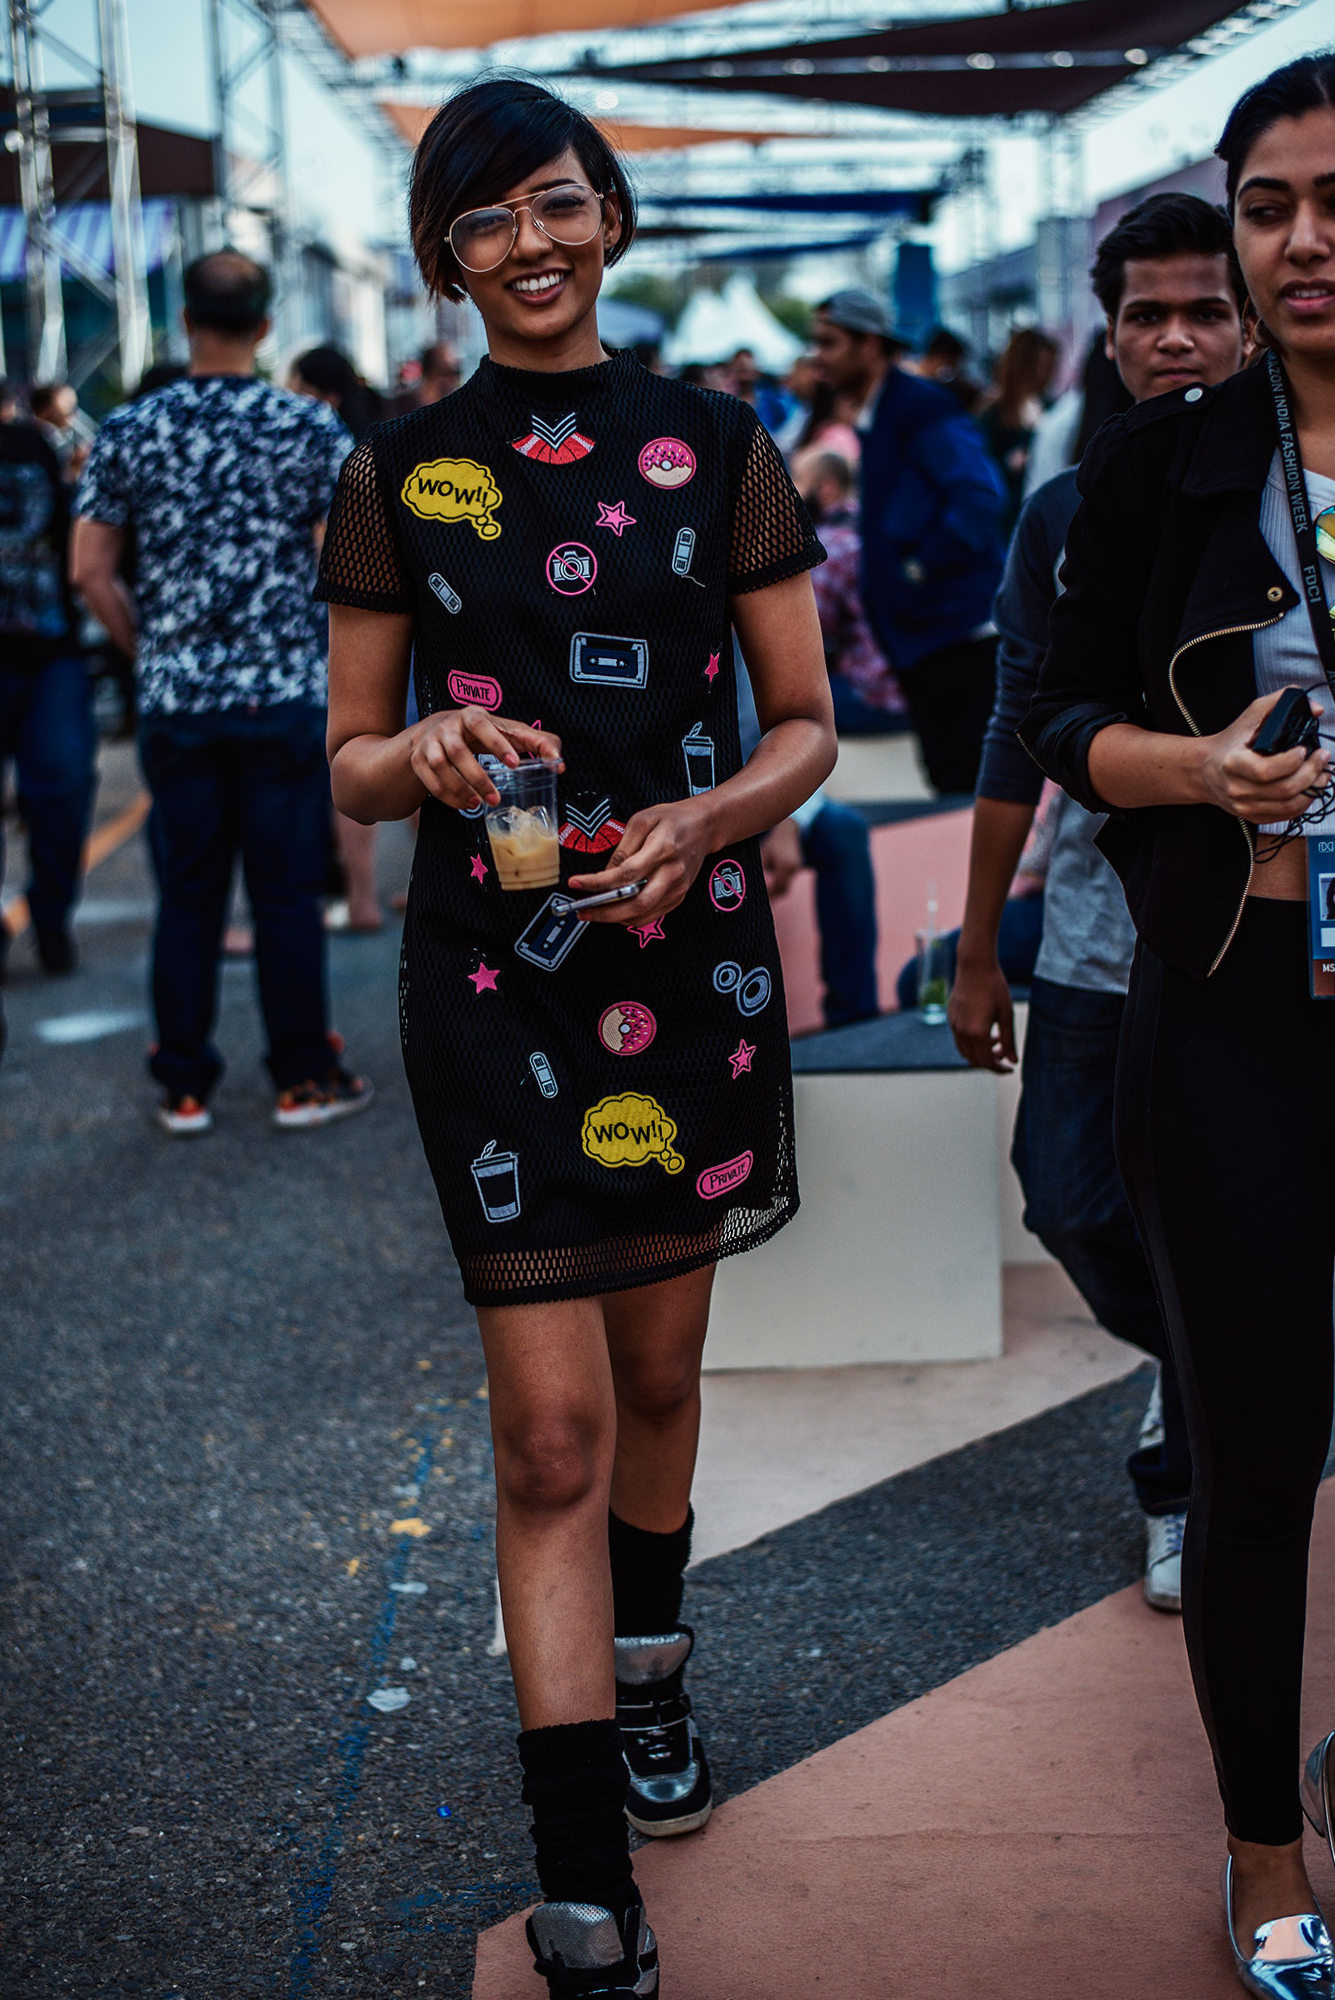 AIFW-AW17-Streetstyle-Rawky-Ksh-7